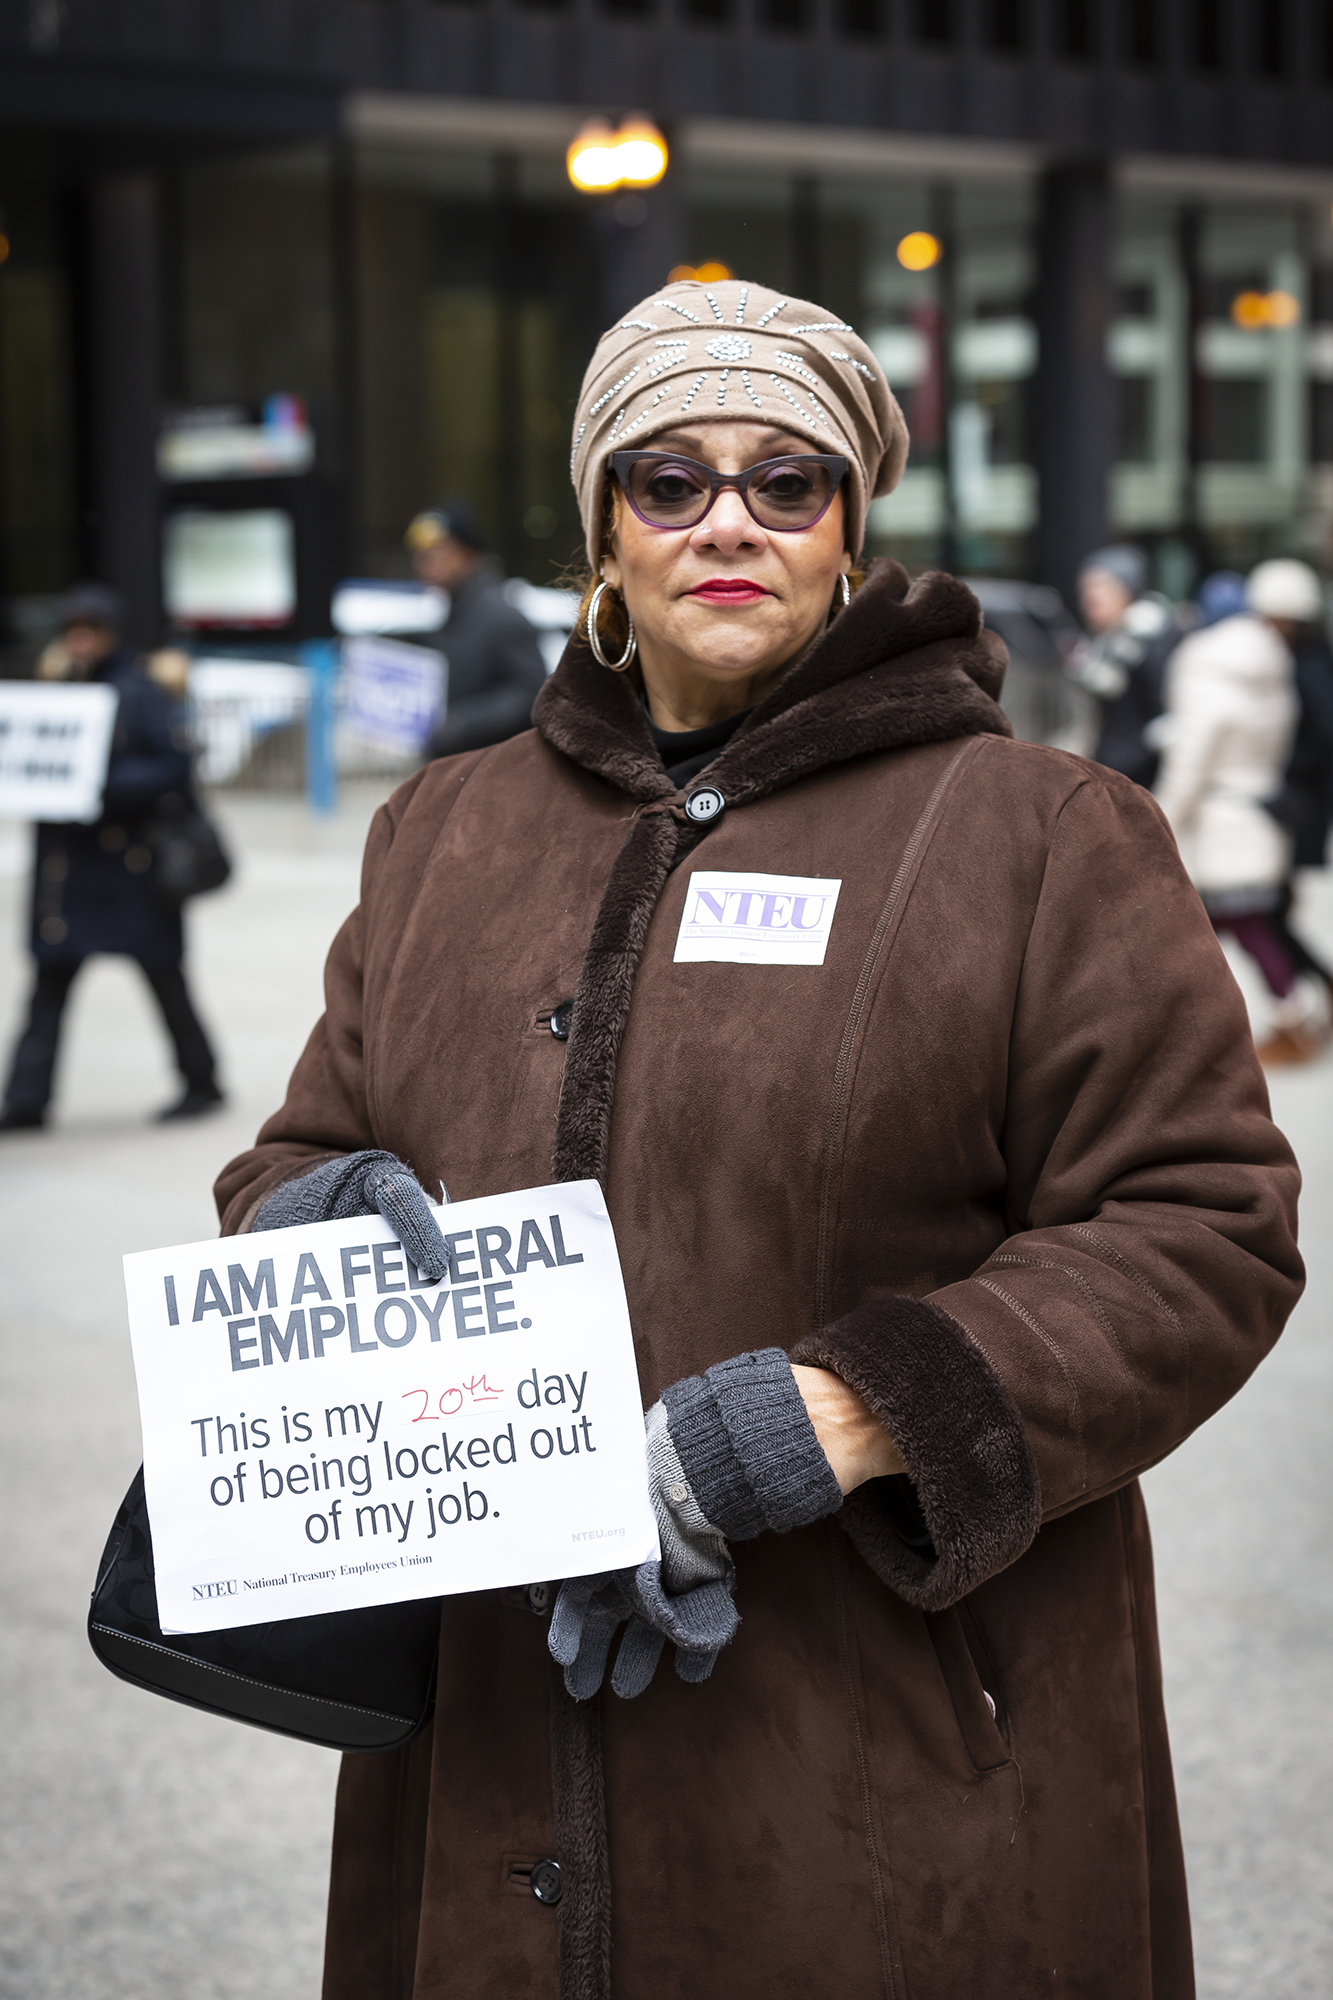 Florence Cannon, who worked at the U.S. Department of Agriculture, said she came downtown not just to rally against the shutdown, but also to clear her credit union bank account of its savings. She said she's not sure how she'll be able to continue feeding her pit bull, a rescue dog she adopted in July, without income. (Manuel Martinez/WBEZ)